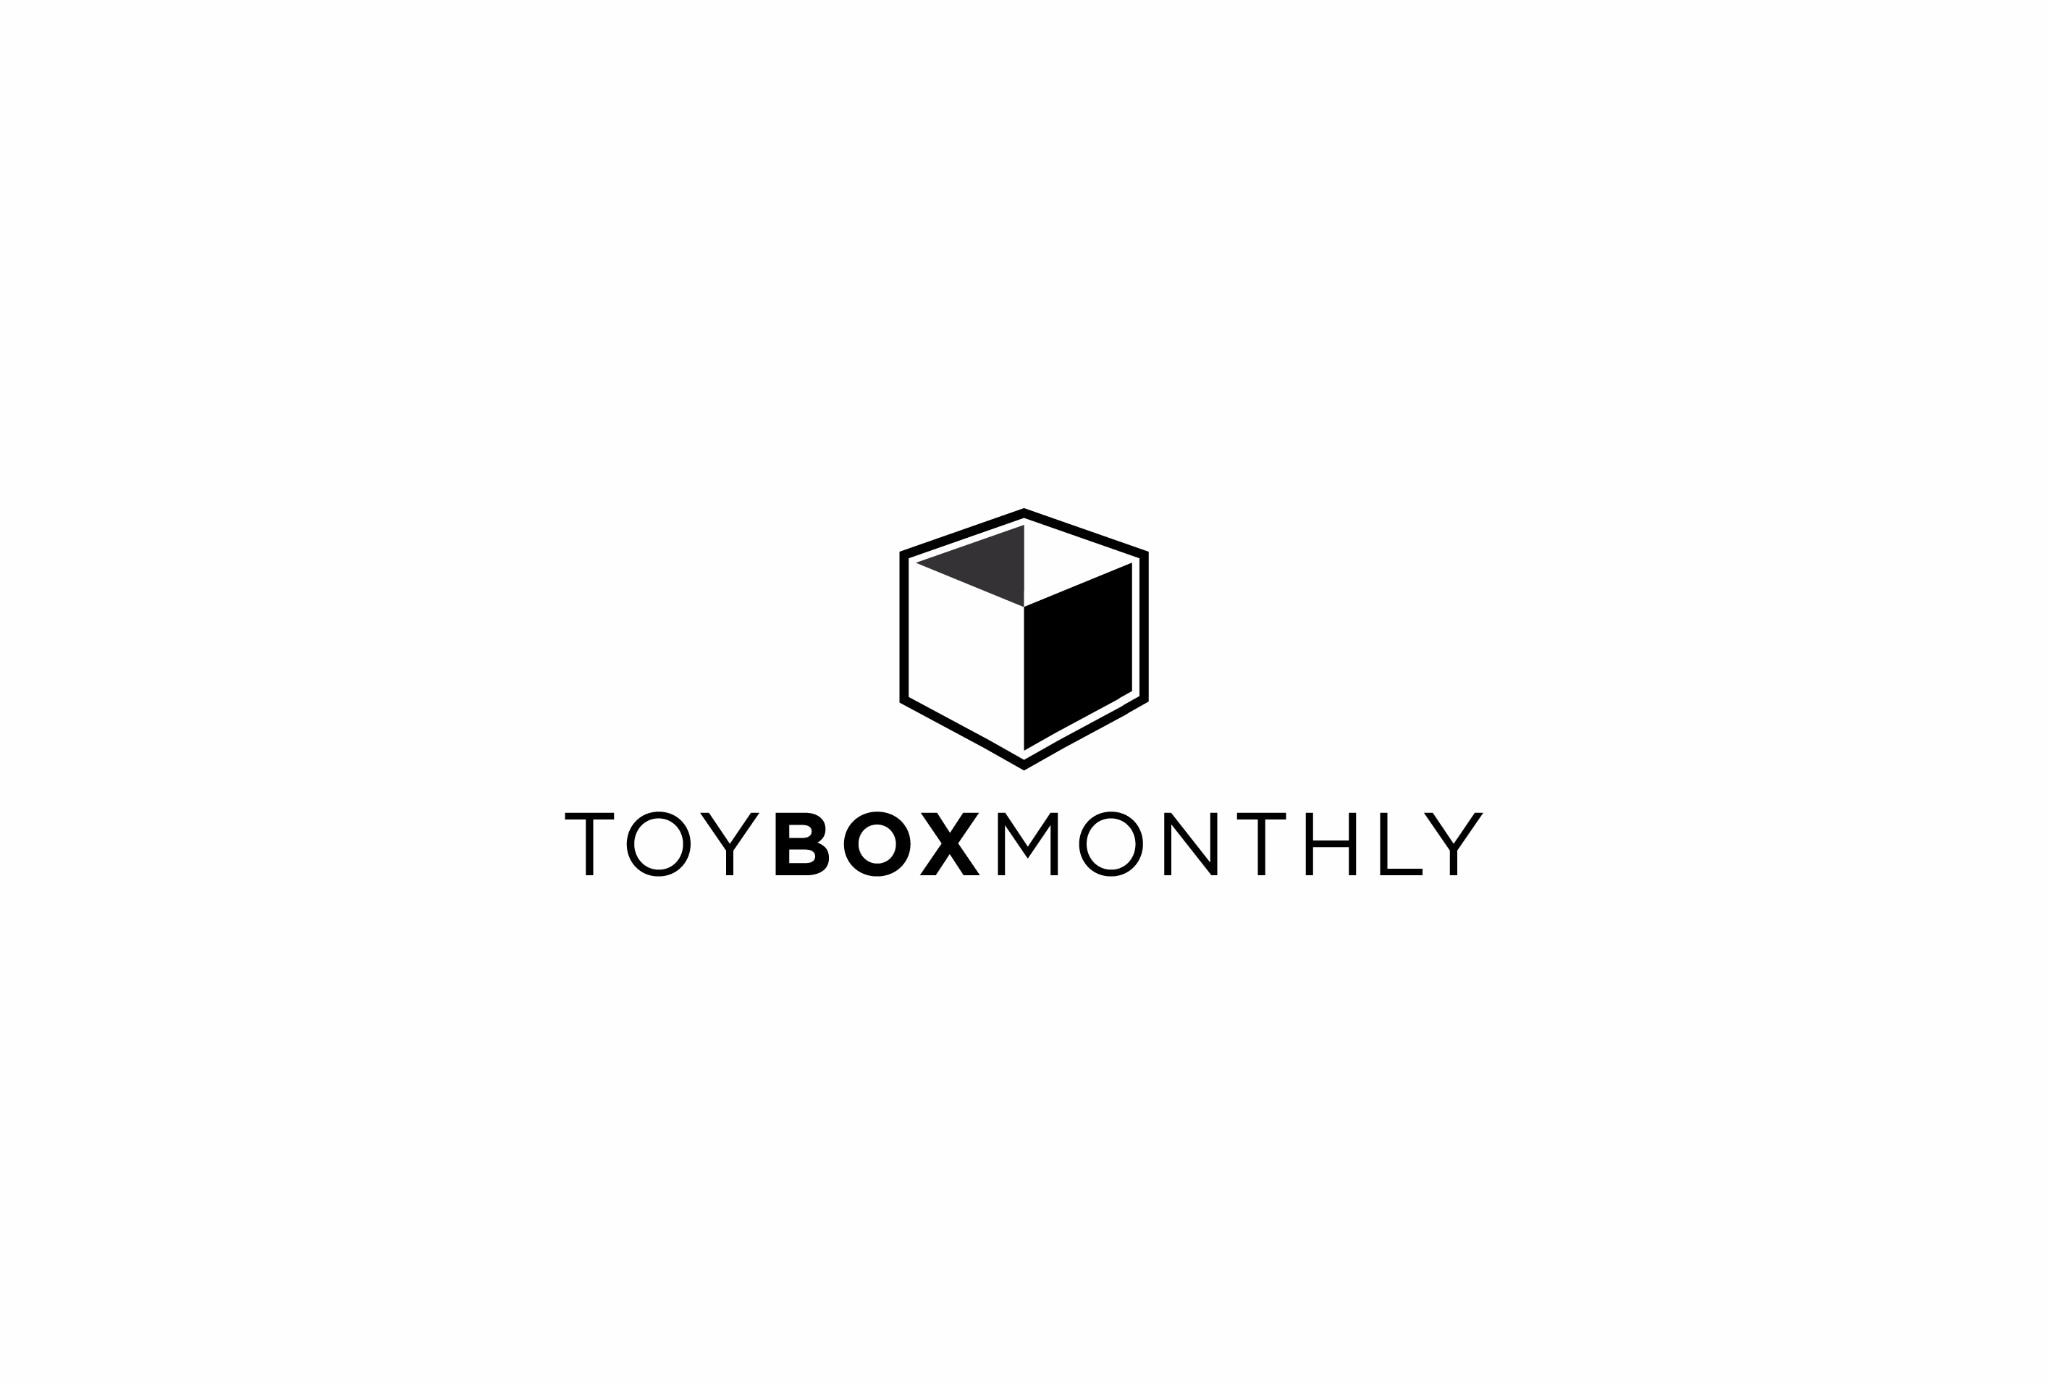 Toy Box Monthly